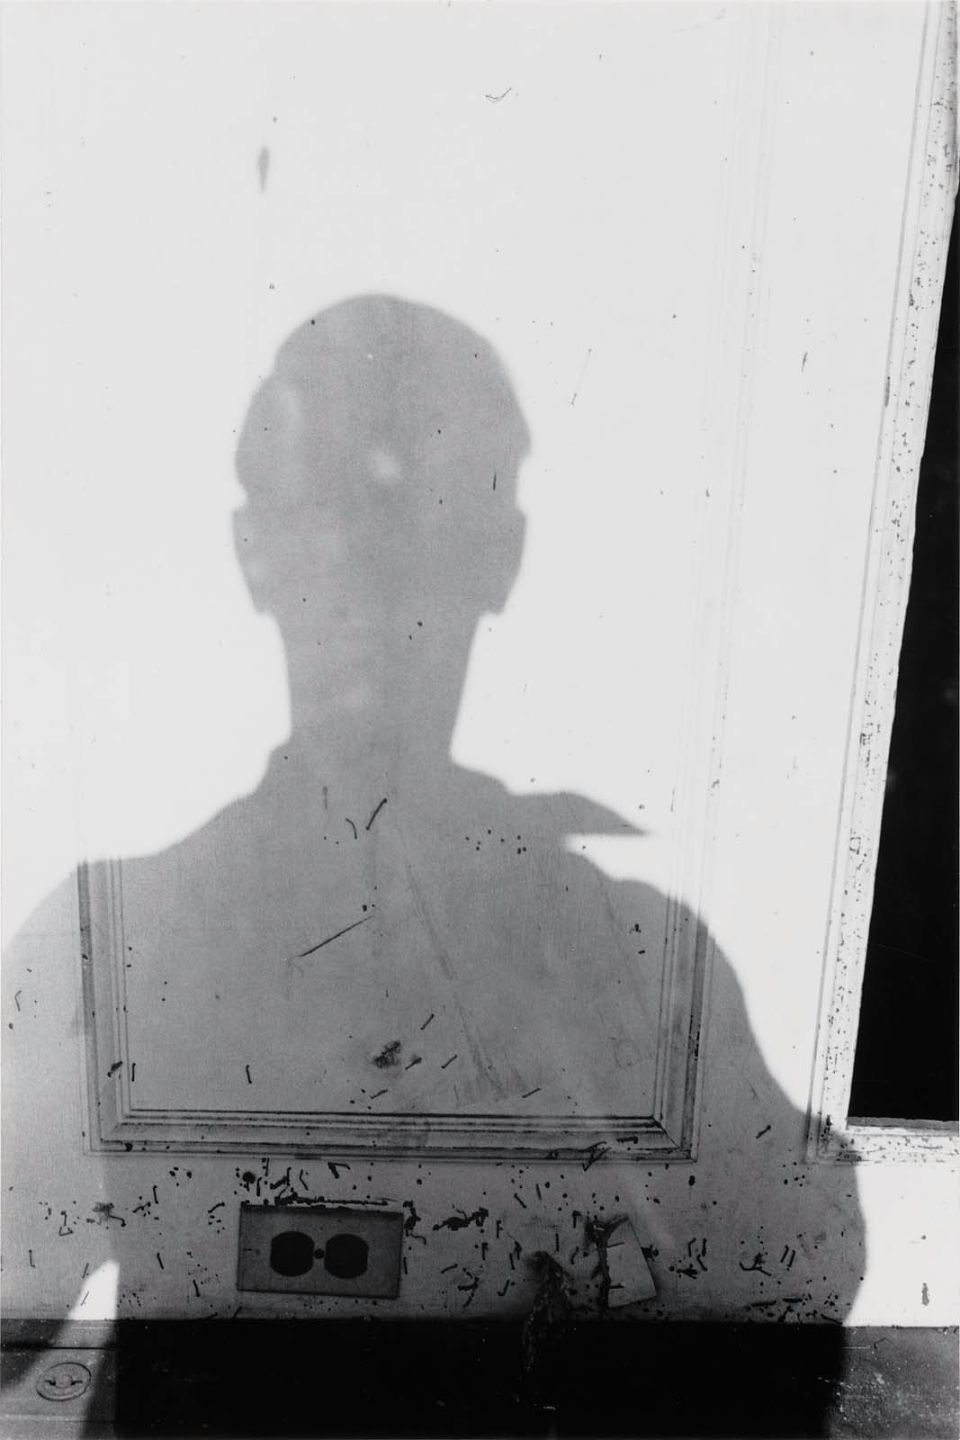 Lee Friedlander Self Portrait 1960 70 Lee Friedlander Self Portrait Photography Self Portrait